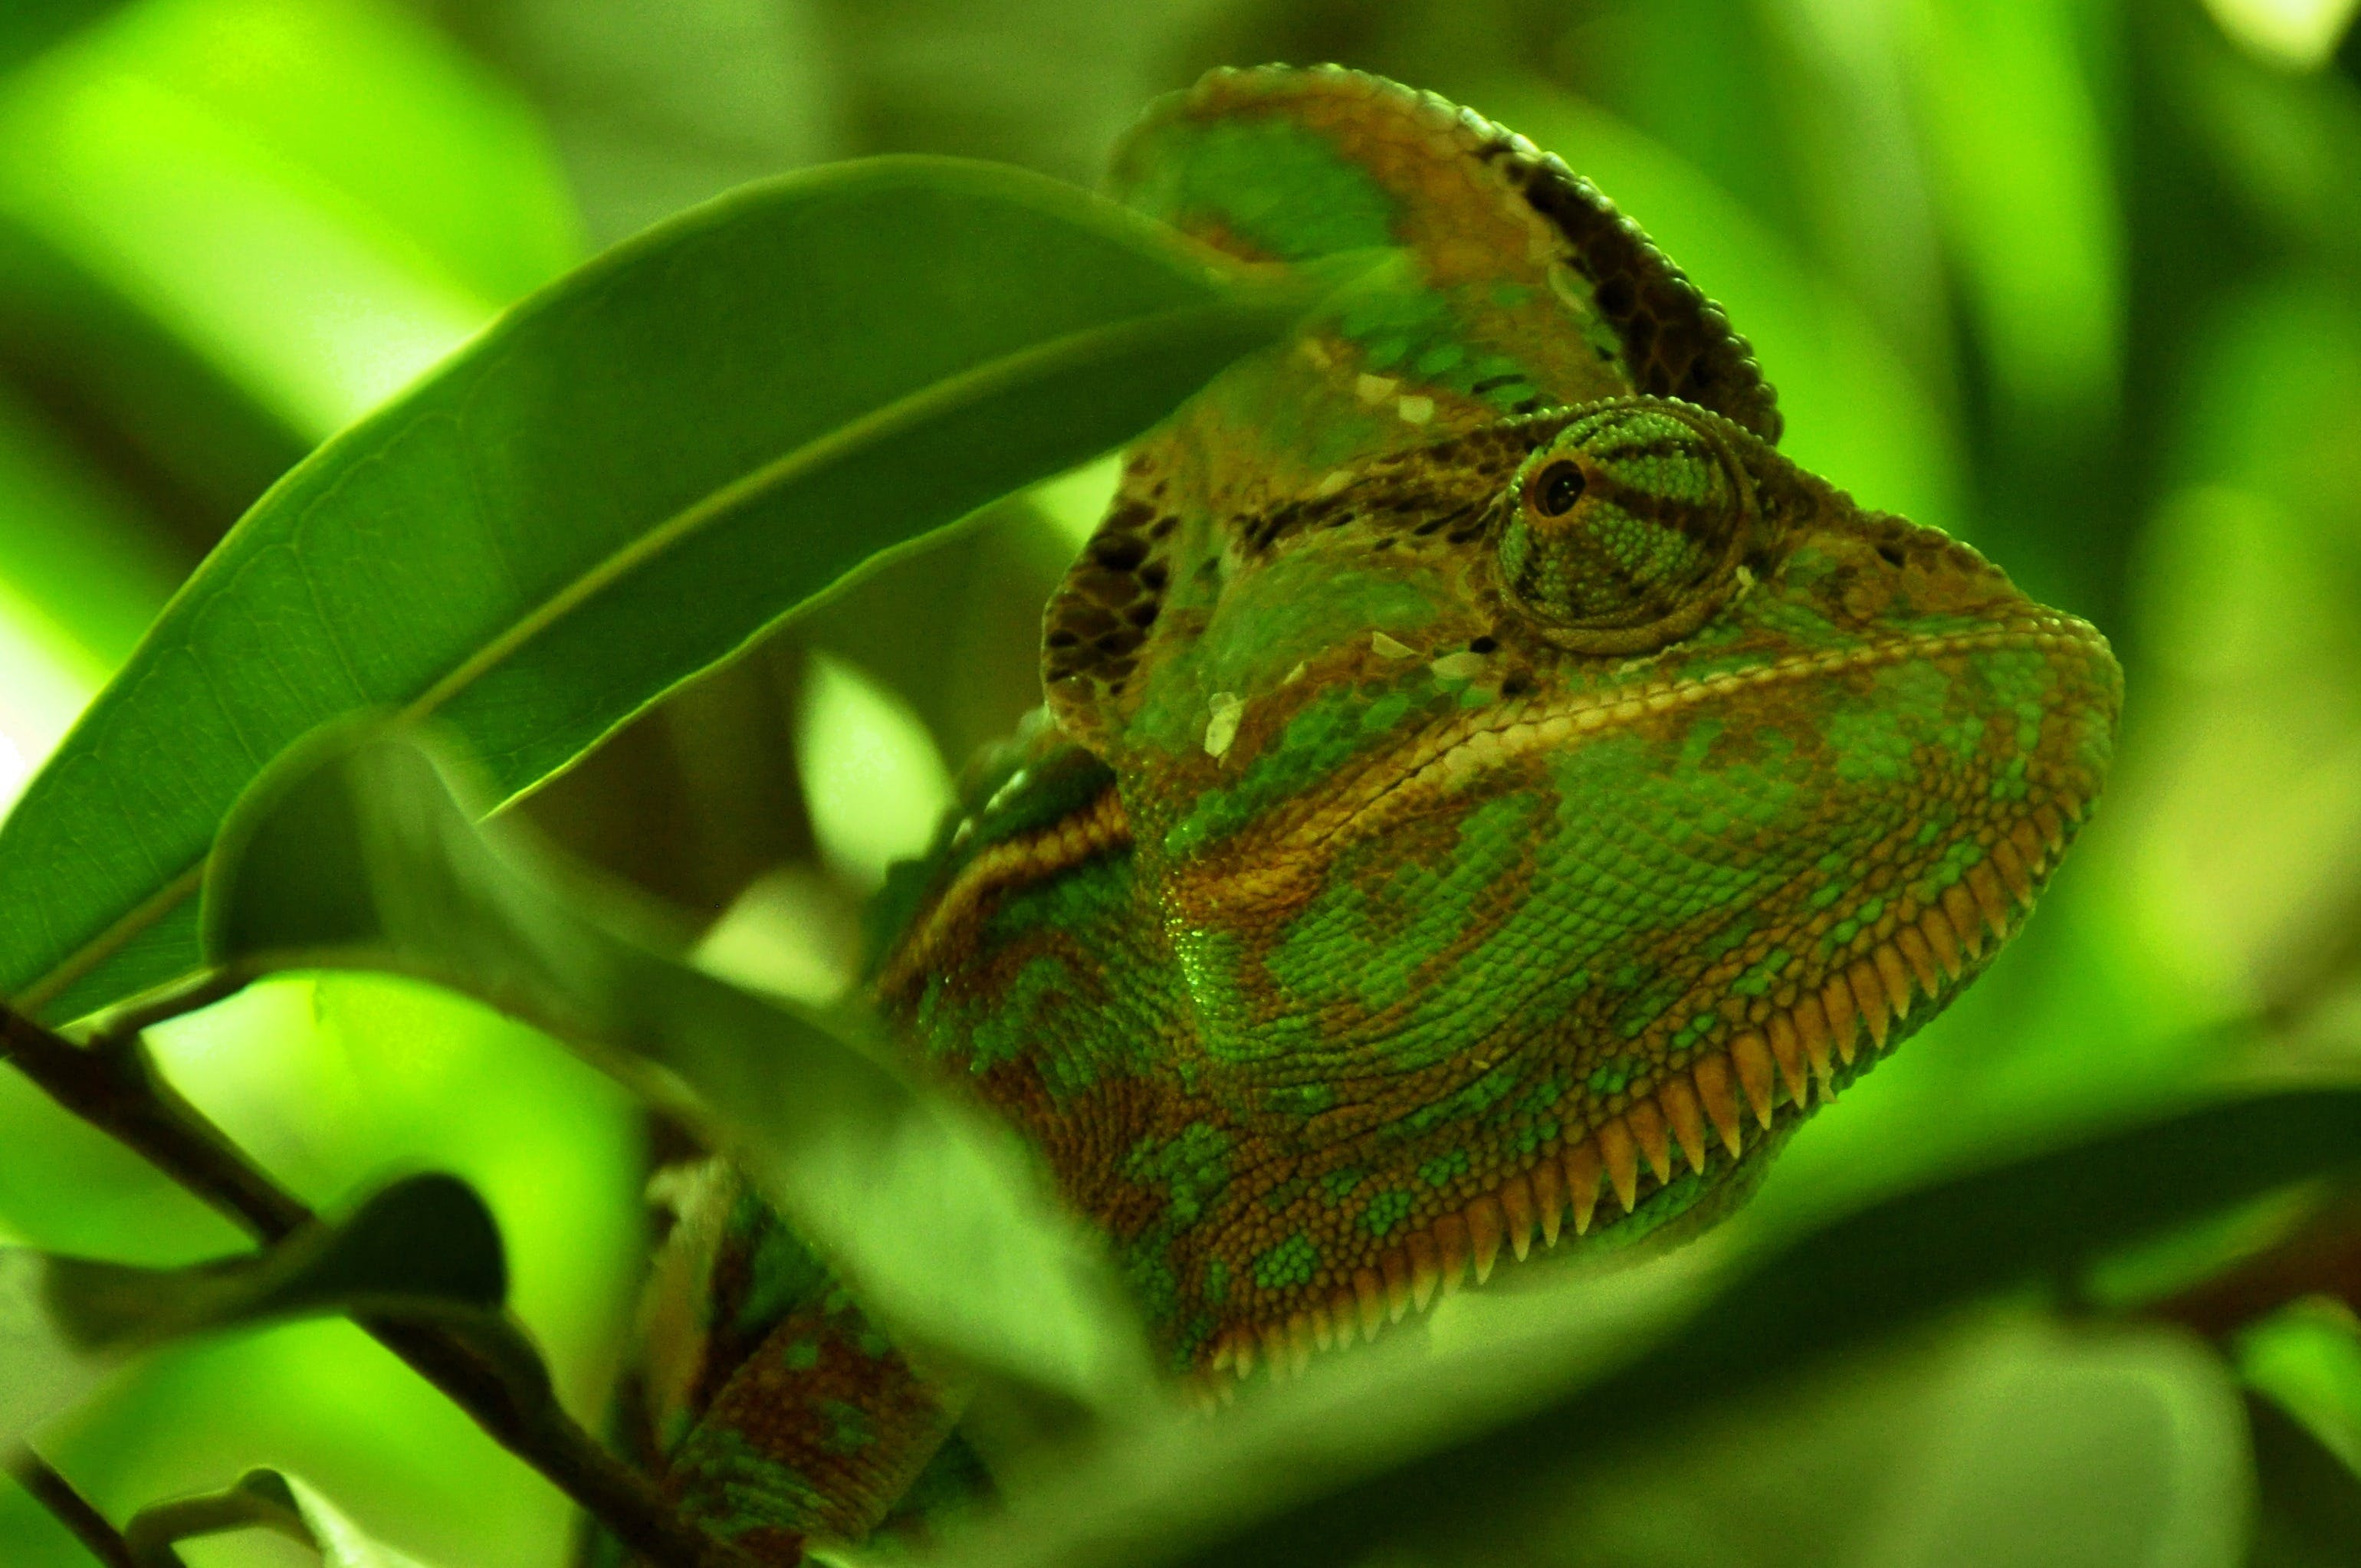 Green and Yellow Chameleon Close Up Photography